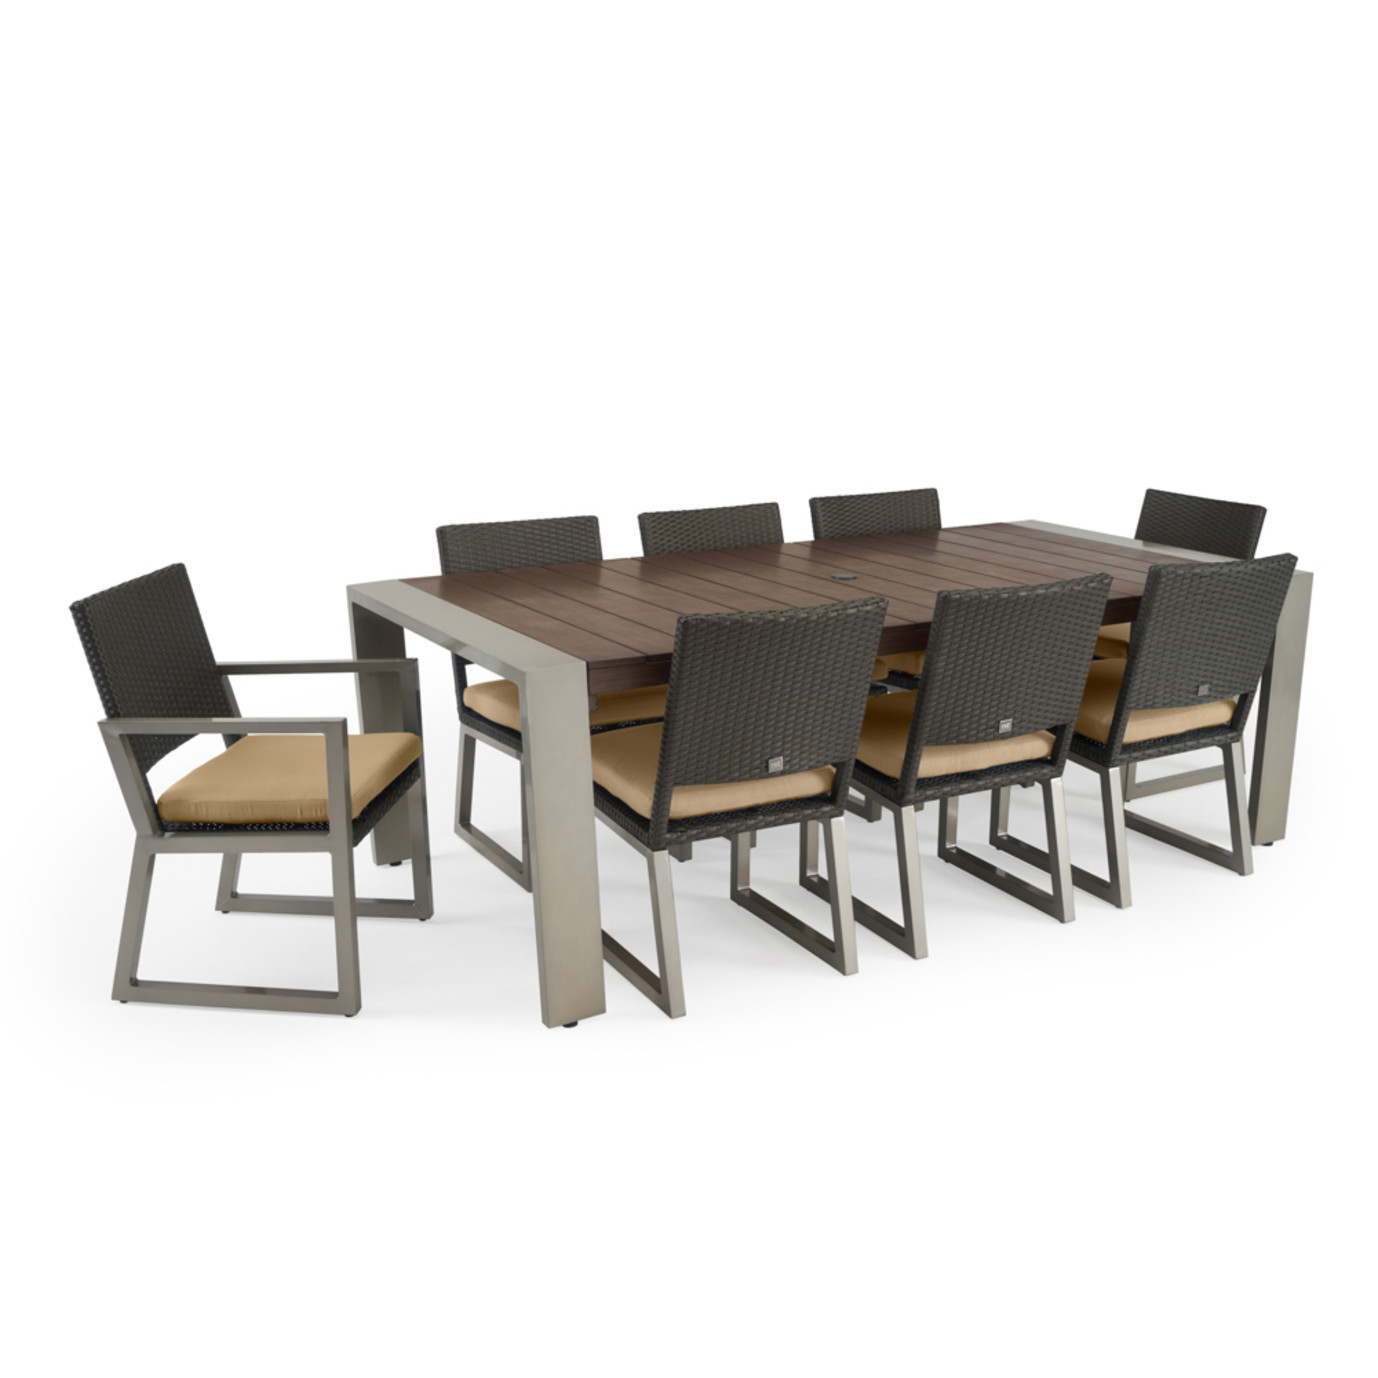 Milo™ Espresso 18 Piece Estate Set - Maxim Beige